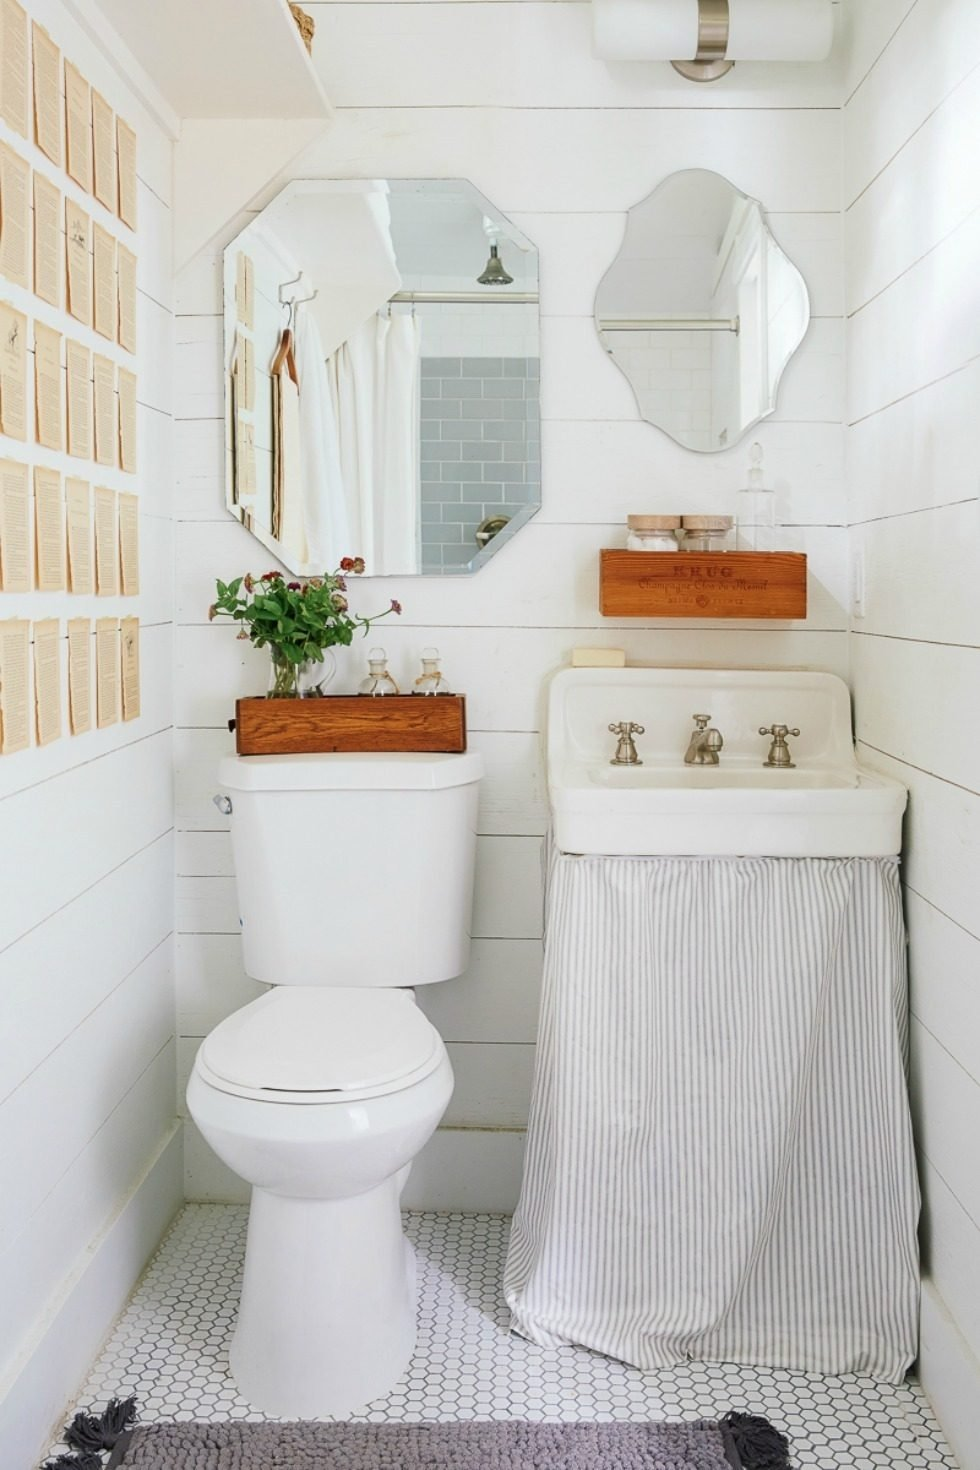 10 Attractive Small Bathroom Decorating Ideas Pictures small bathroom decorating ideas on a budget brown finish stained